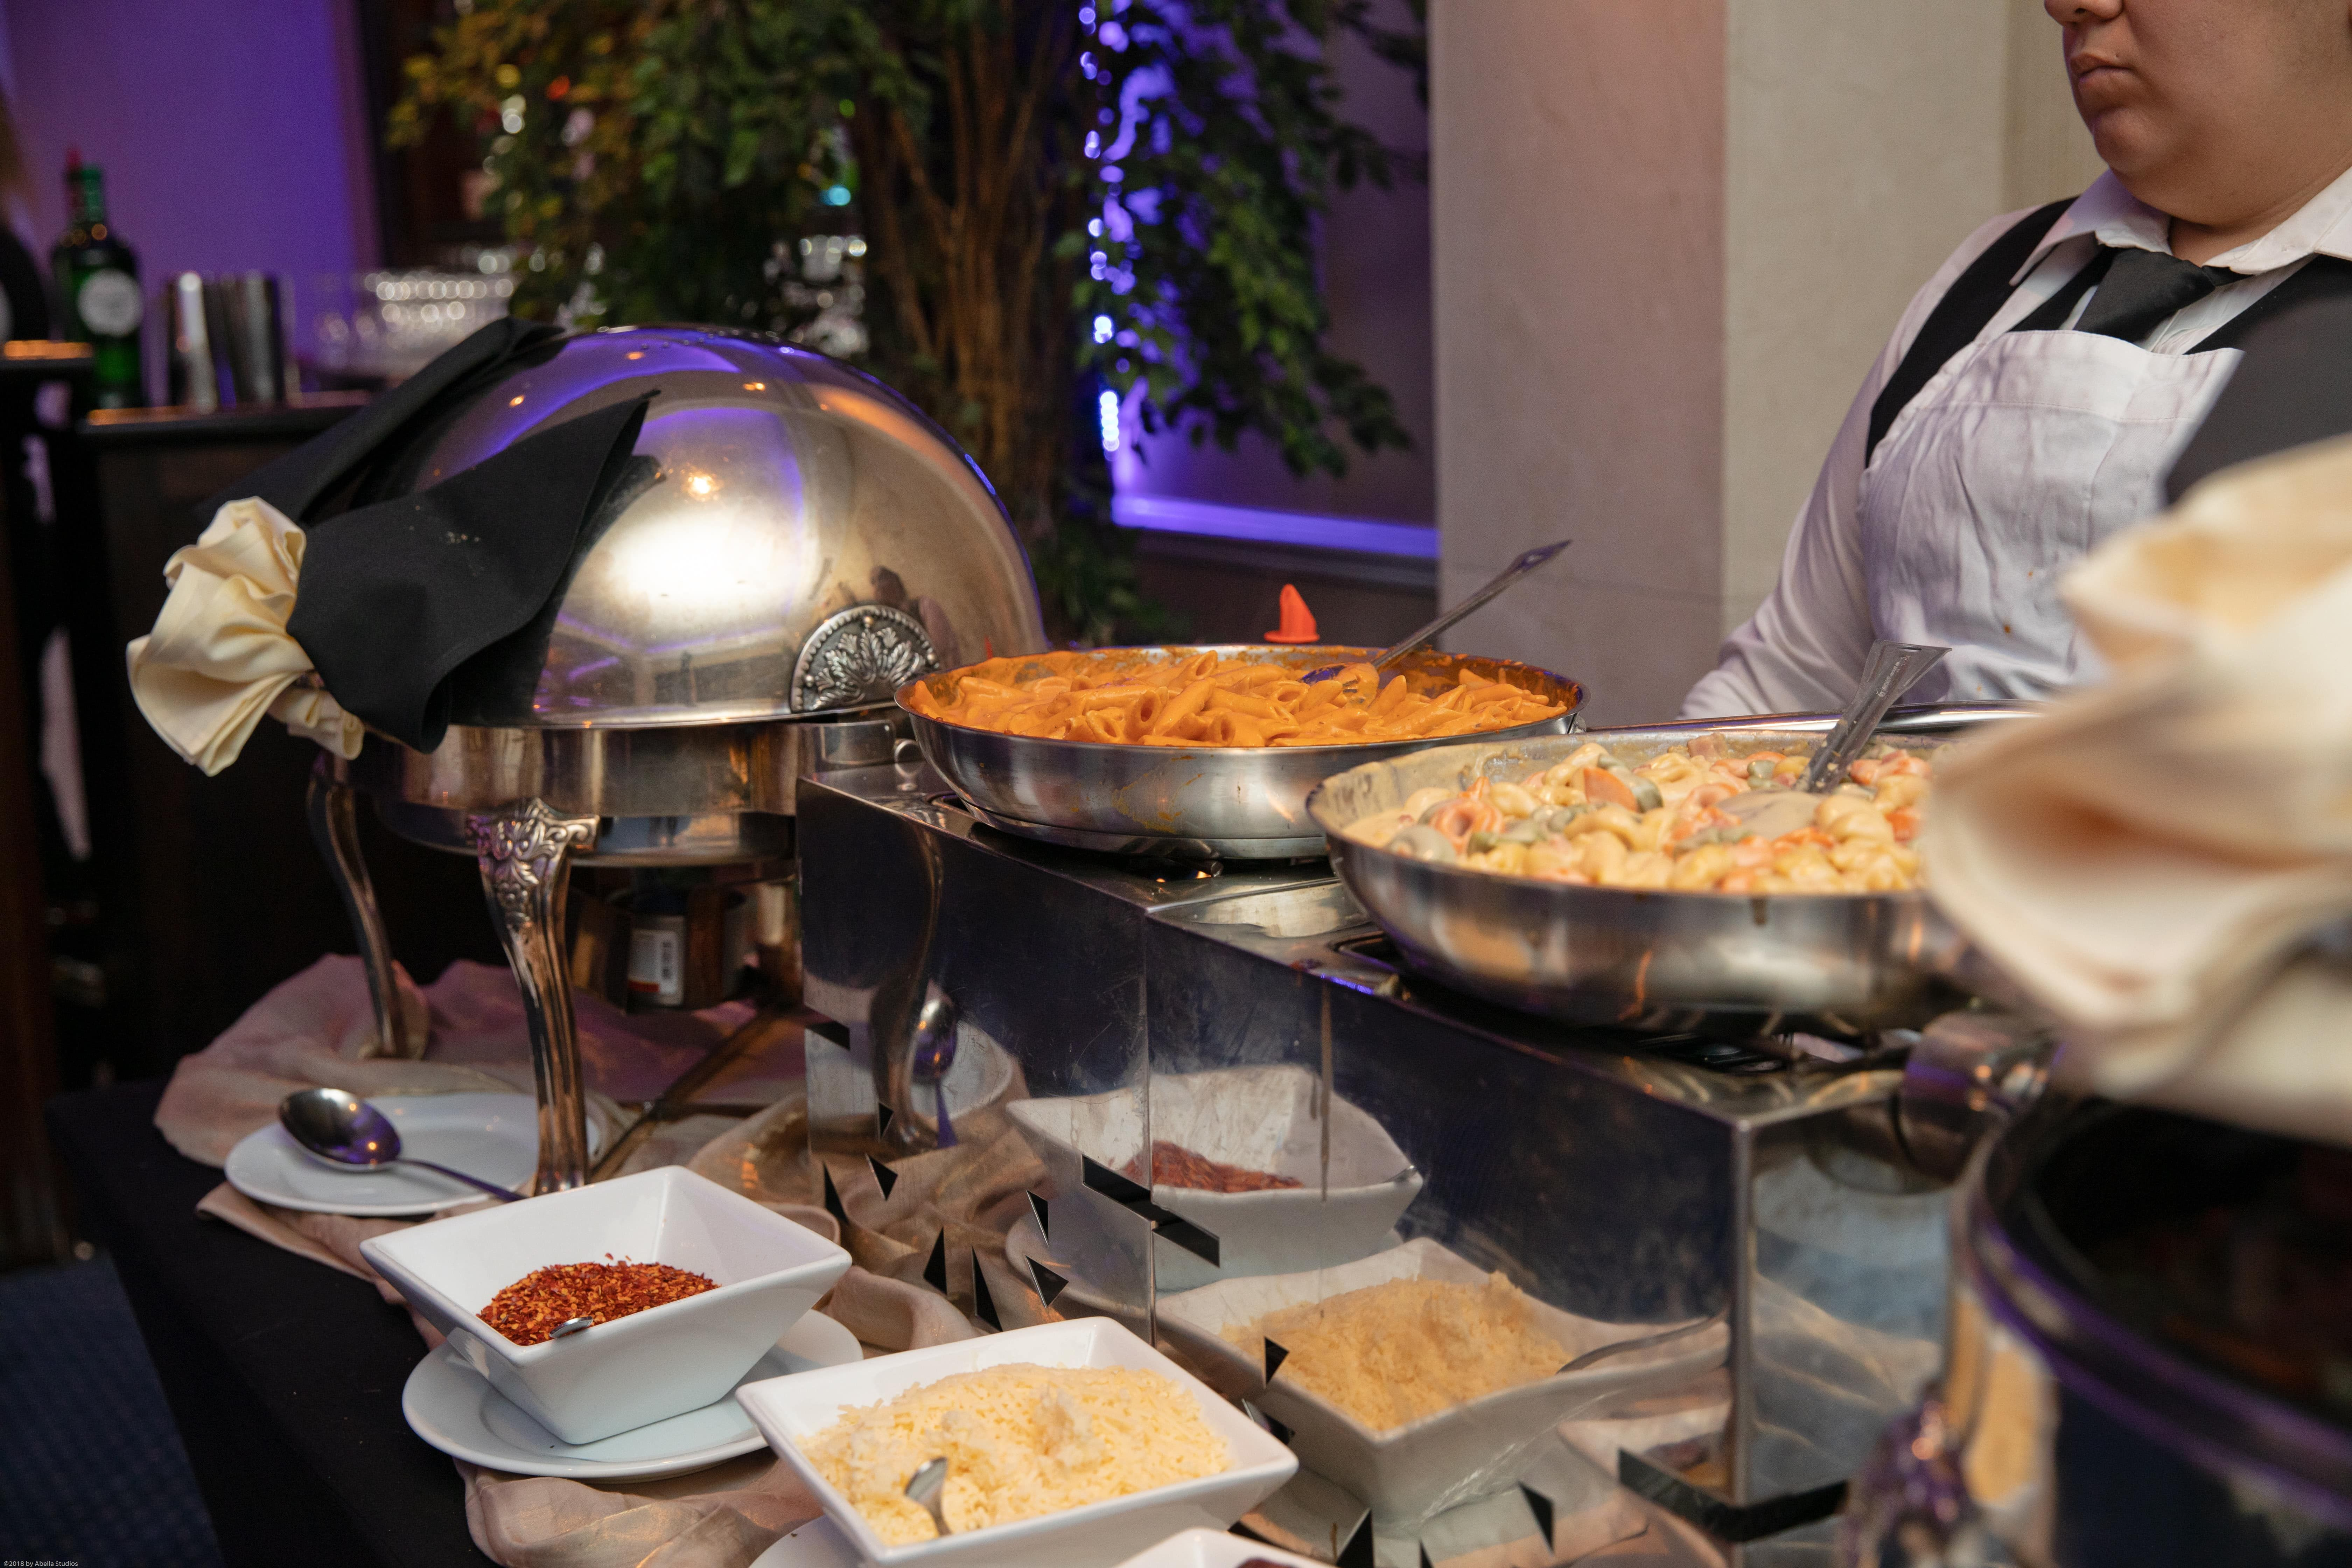 Pasta Station With All The Fixings Banquet Food Gourmet Wedding Cake Homemade Sauce